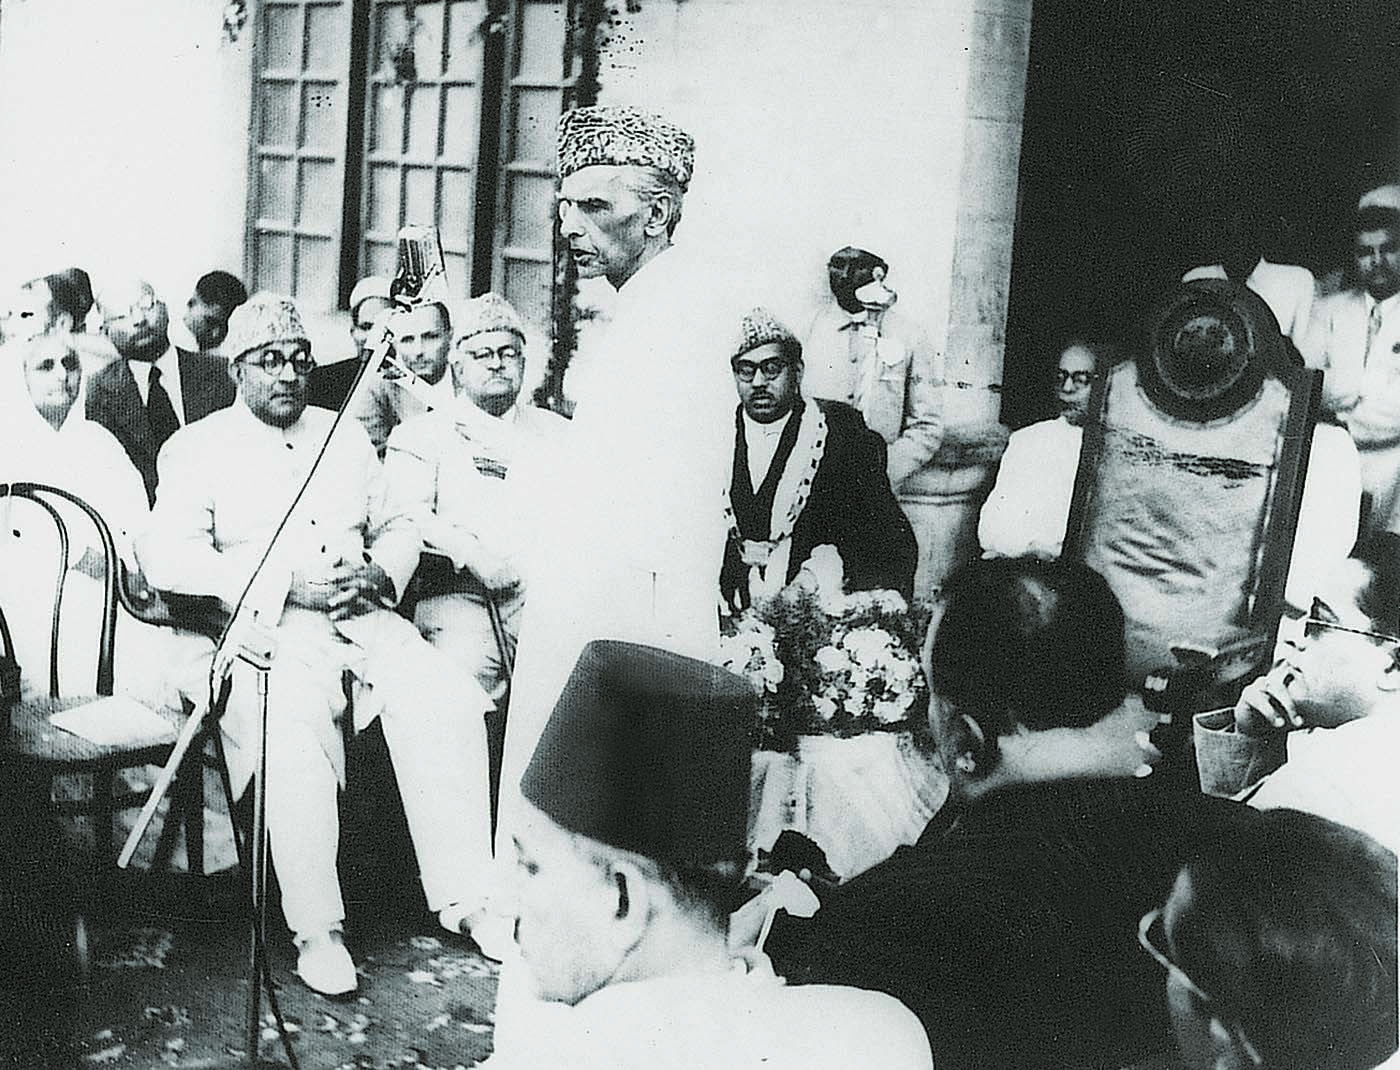 Quaid-i-Azam Mohammad Ali Jinnah speaks at a civic reception held in his